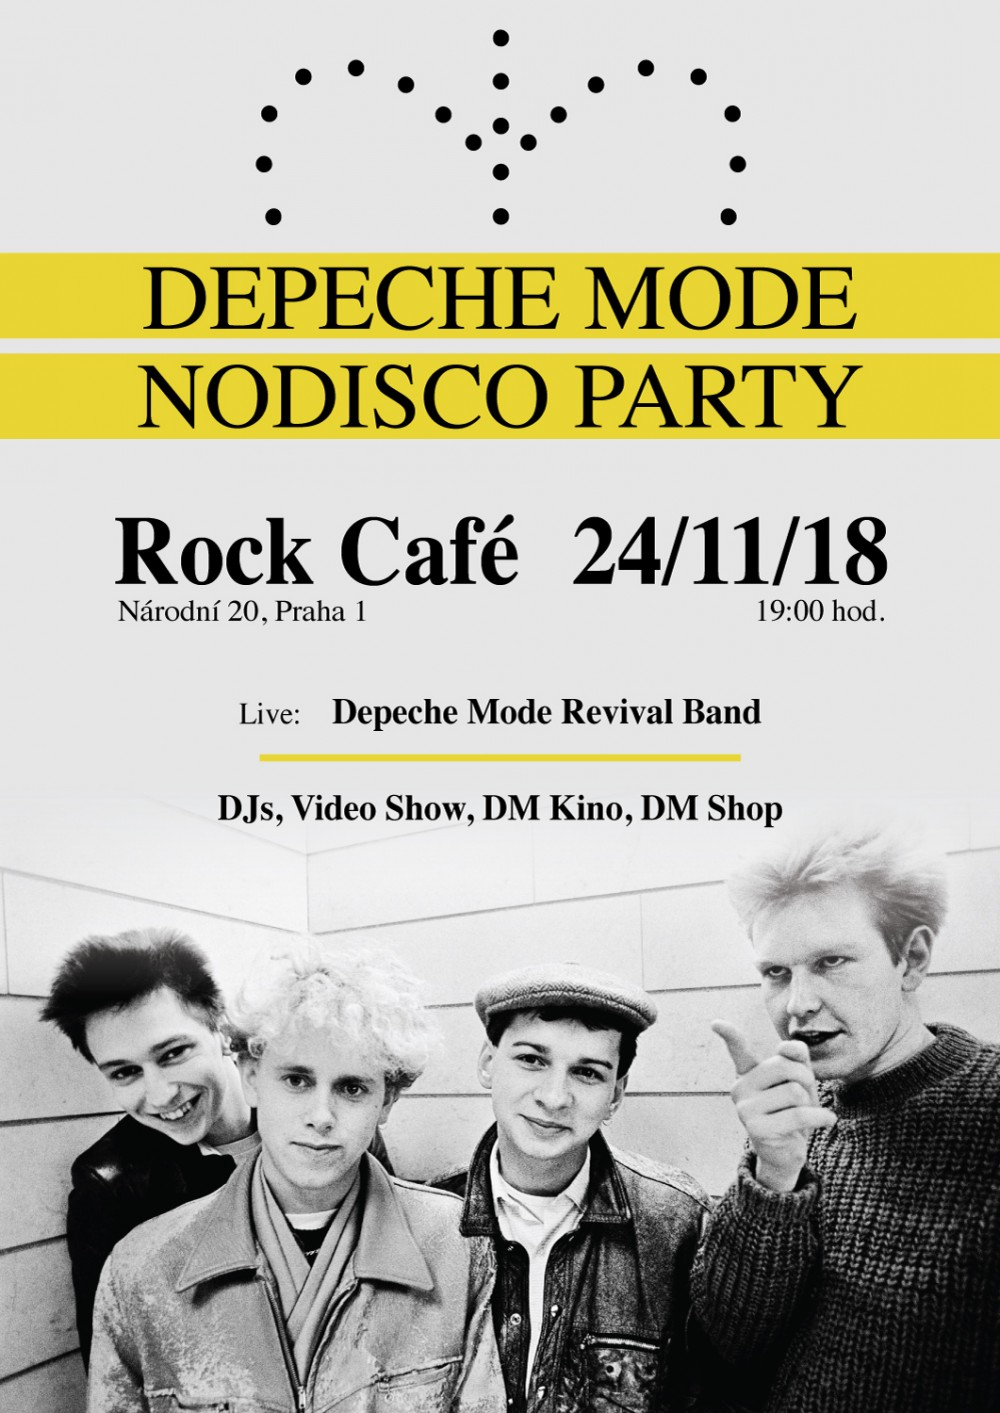 Praha: Depeche Mode Nodisco party